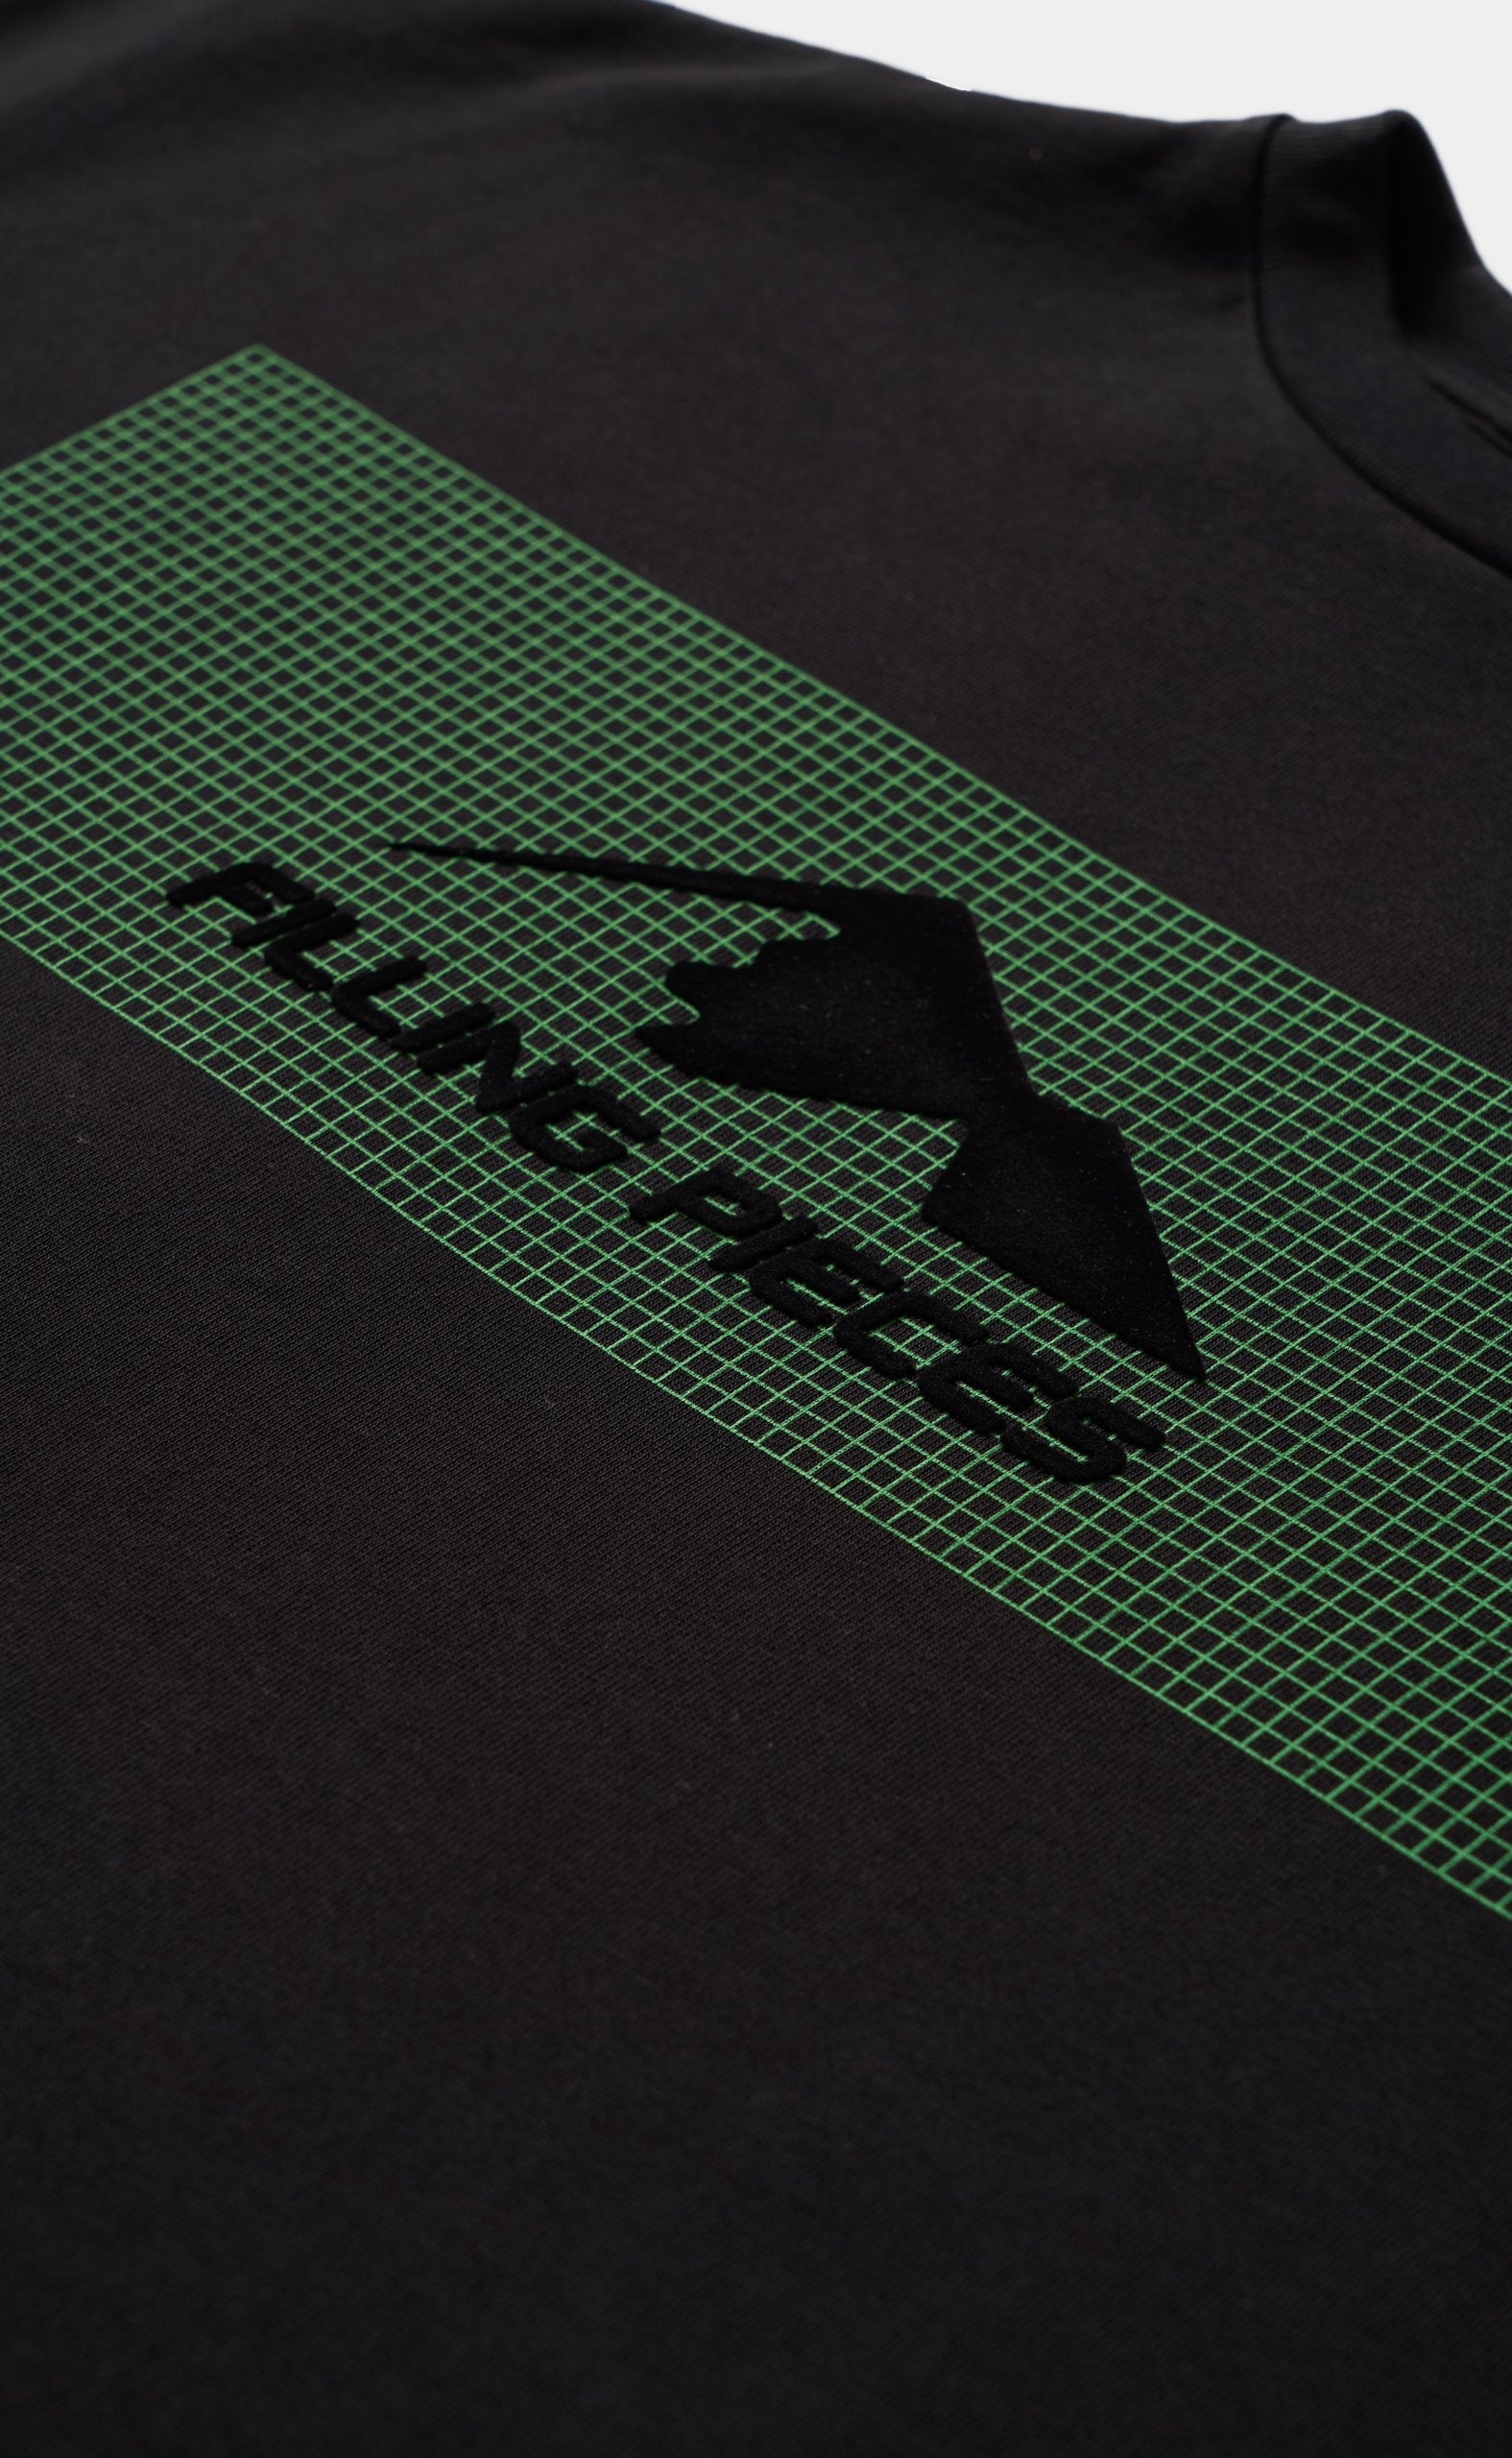 Graphic Tee Black - Mountain Grid Green